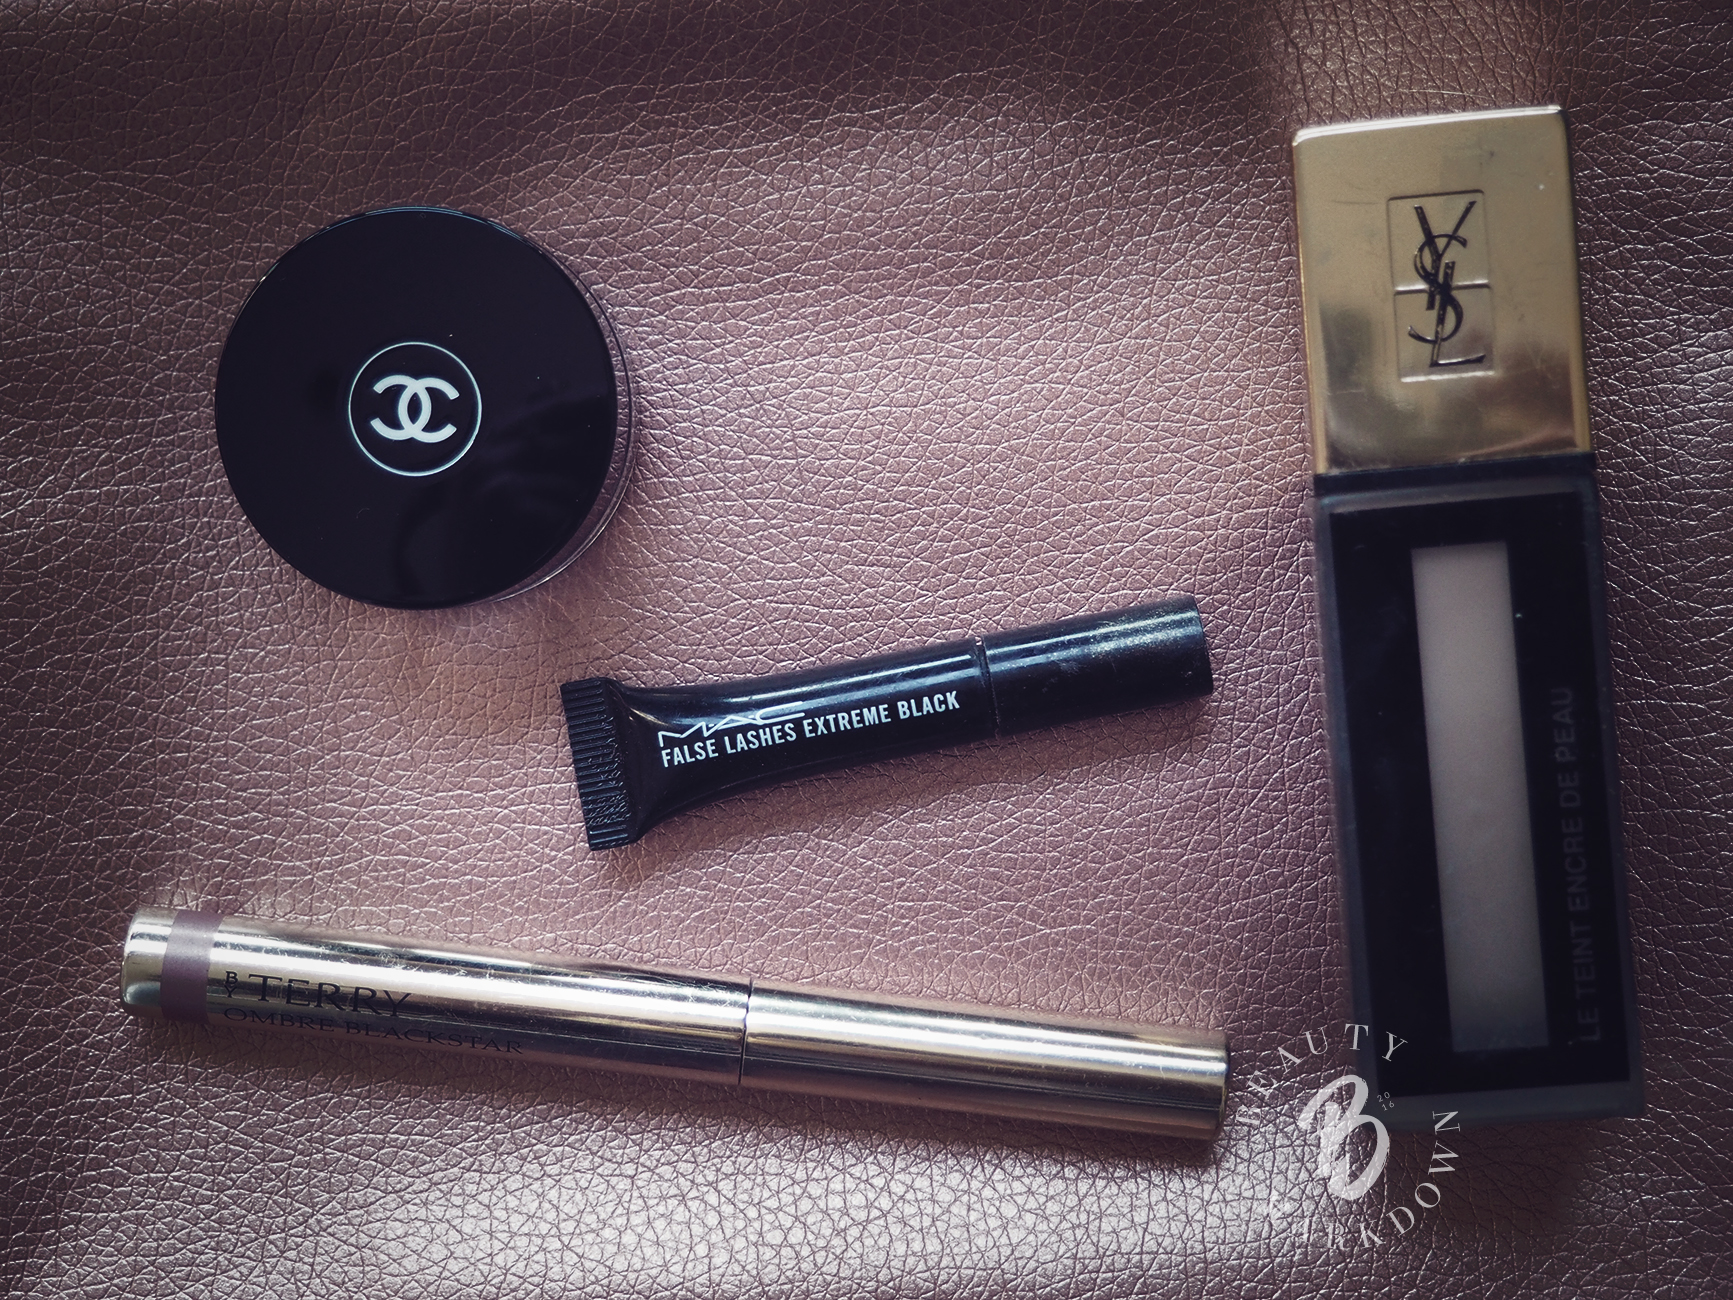 Disappointing high end products YSL Chanel By Terry MAC